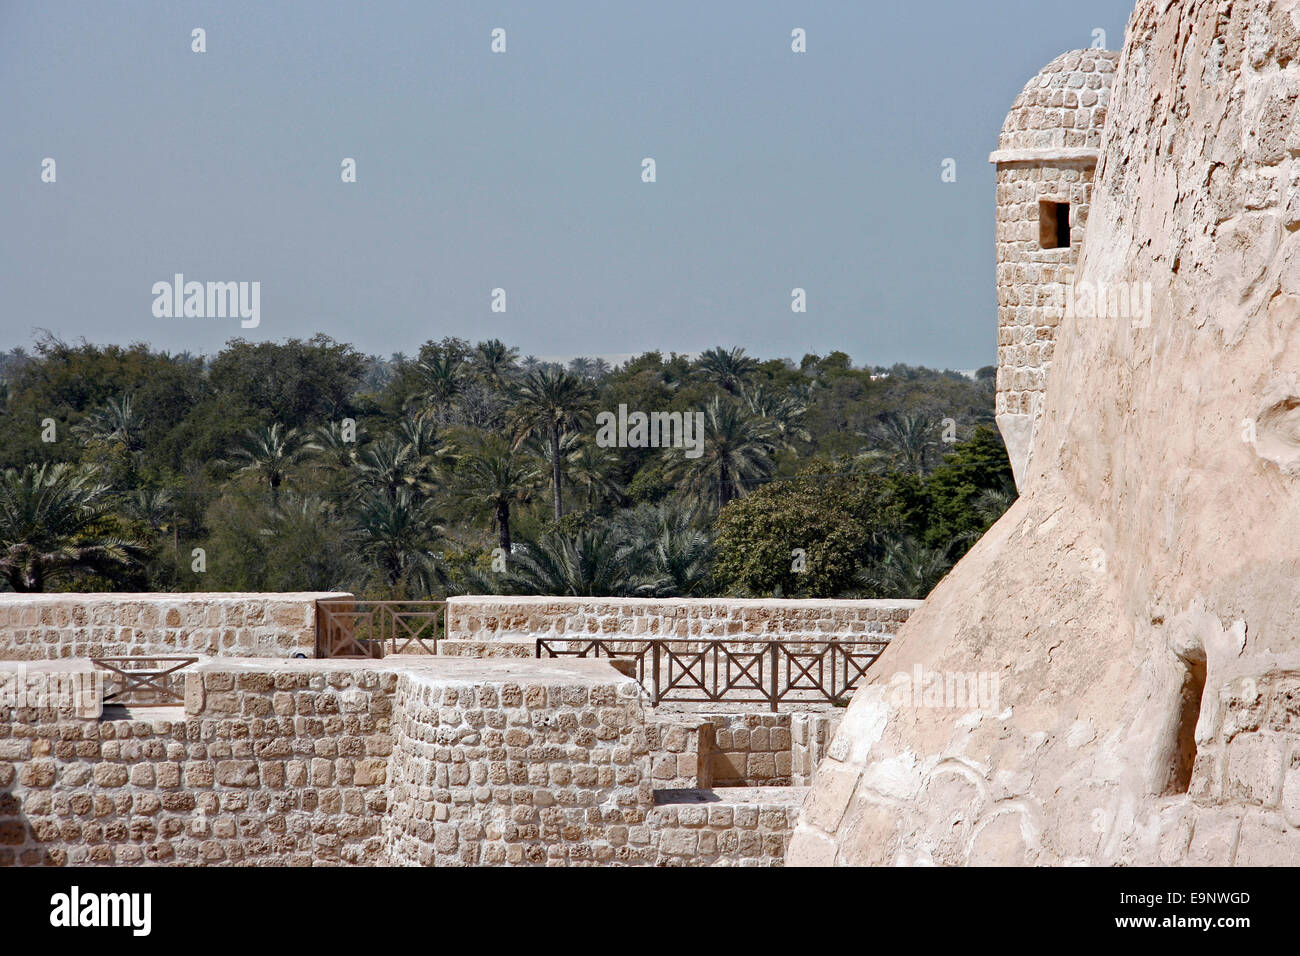 Qala'at Bahrain, also known as the Portuguese Fort, near Manama, Bahrain - Stock Image